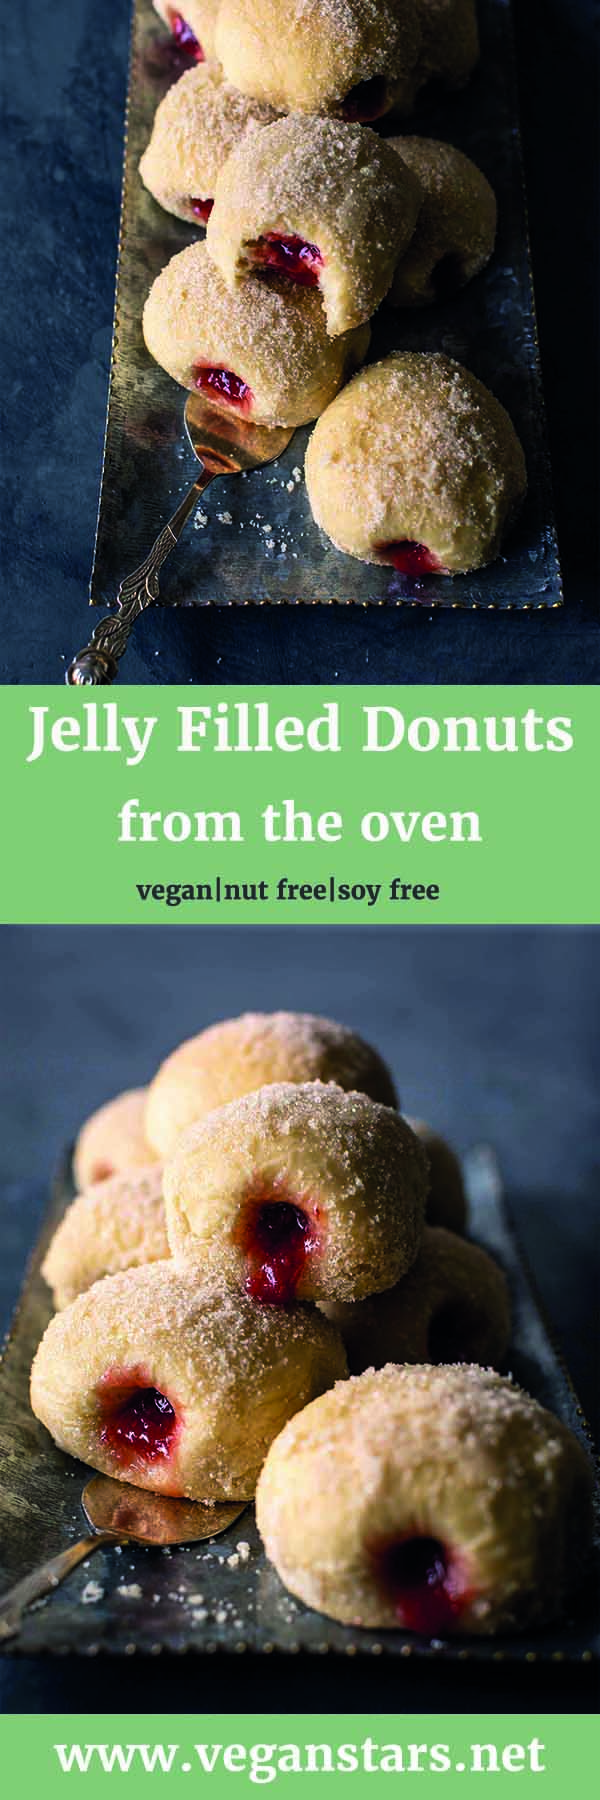 Vegan Jelly Filled Donuts